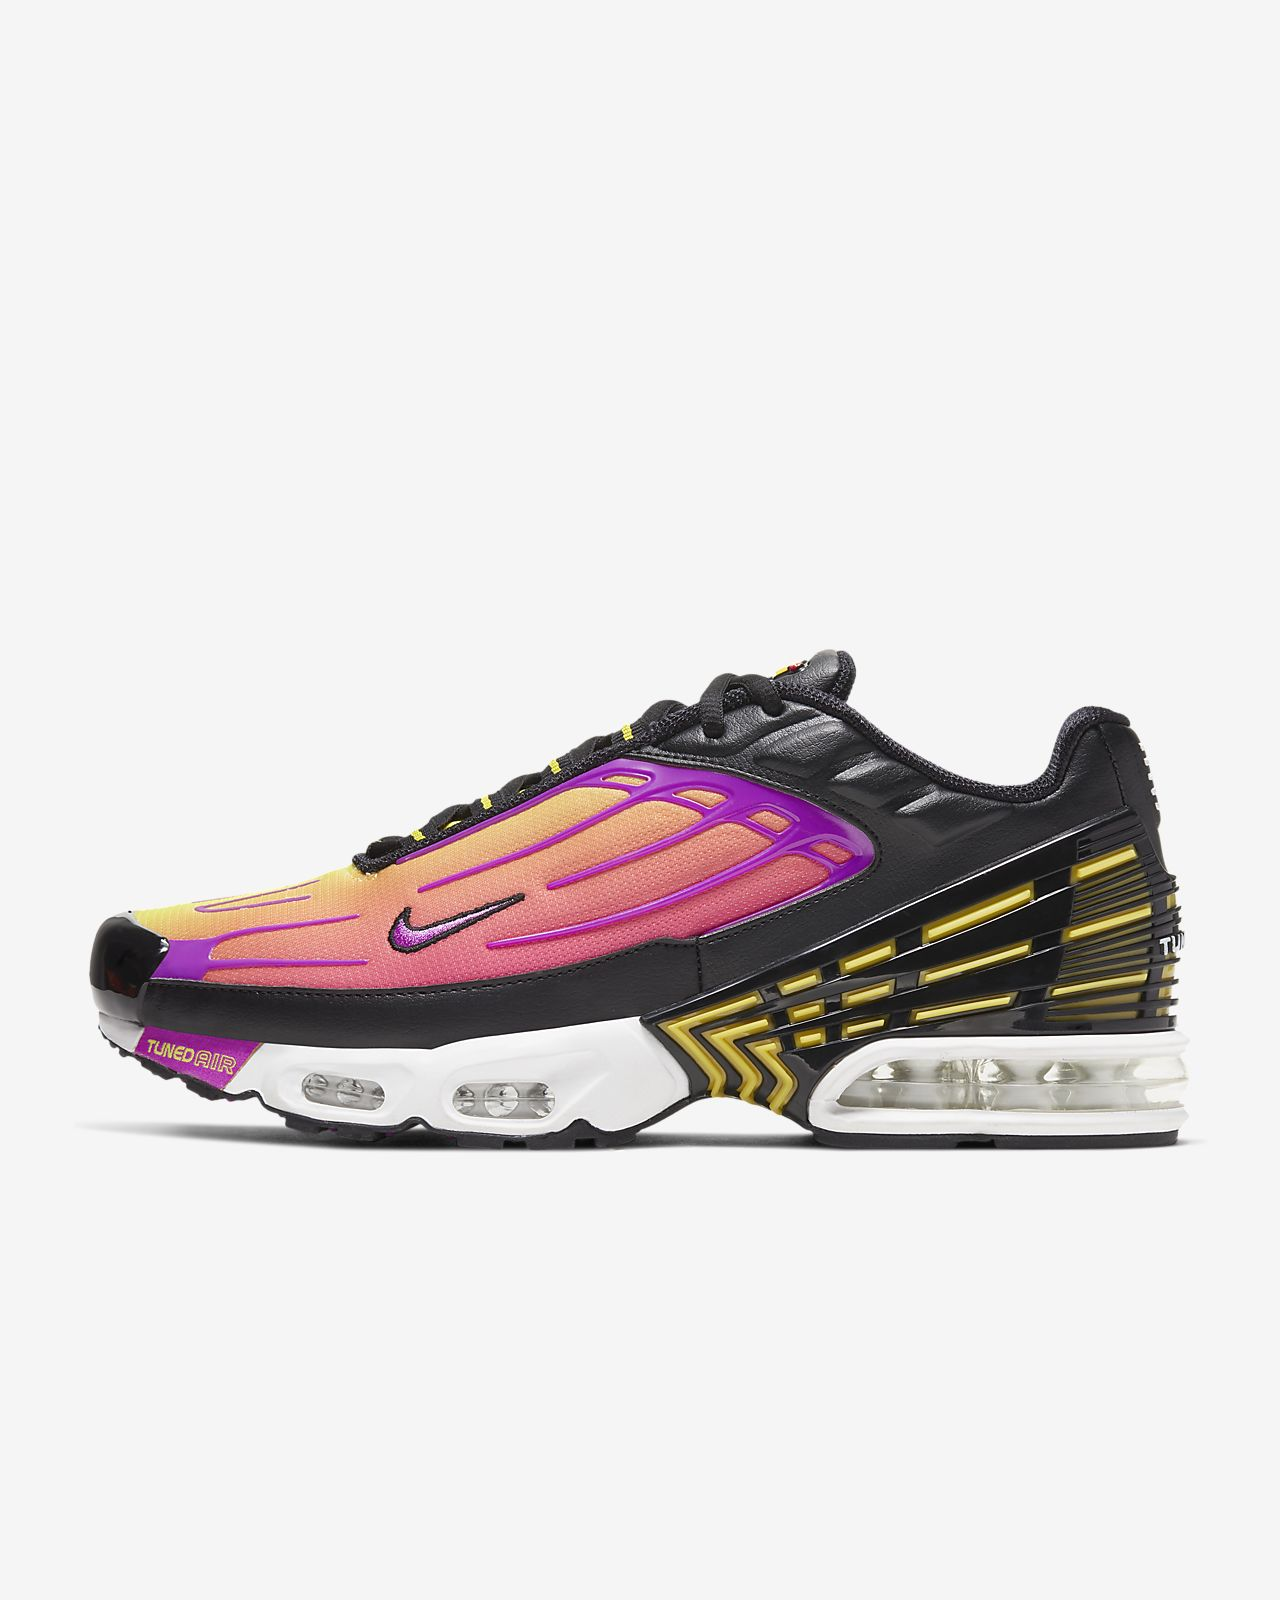 Nike Men's Air Max Plus Running Shoes